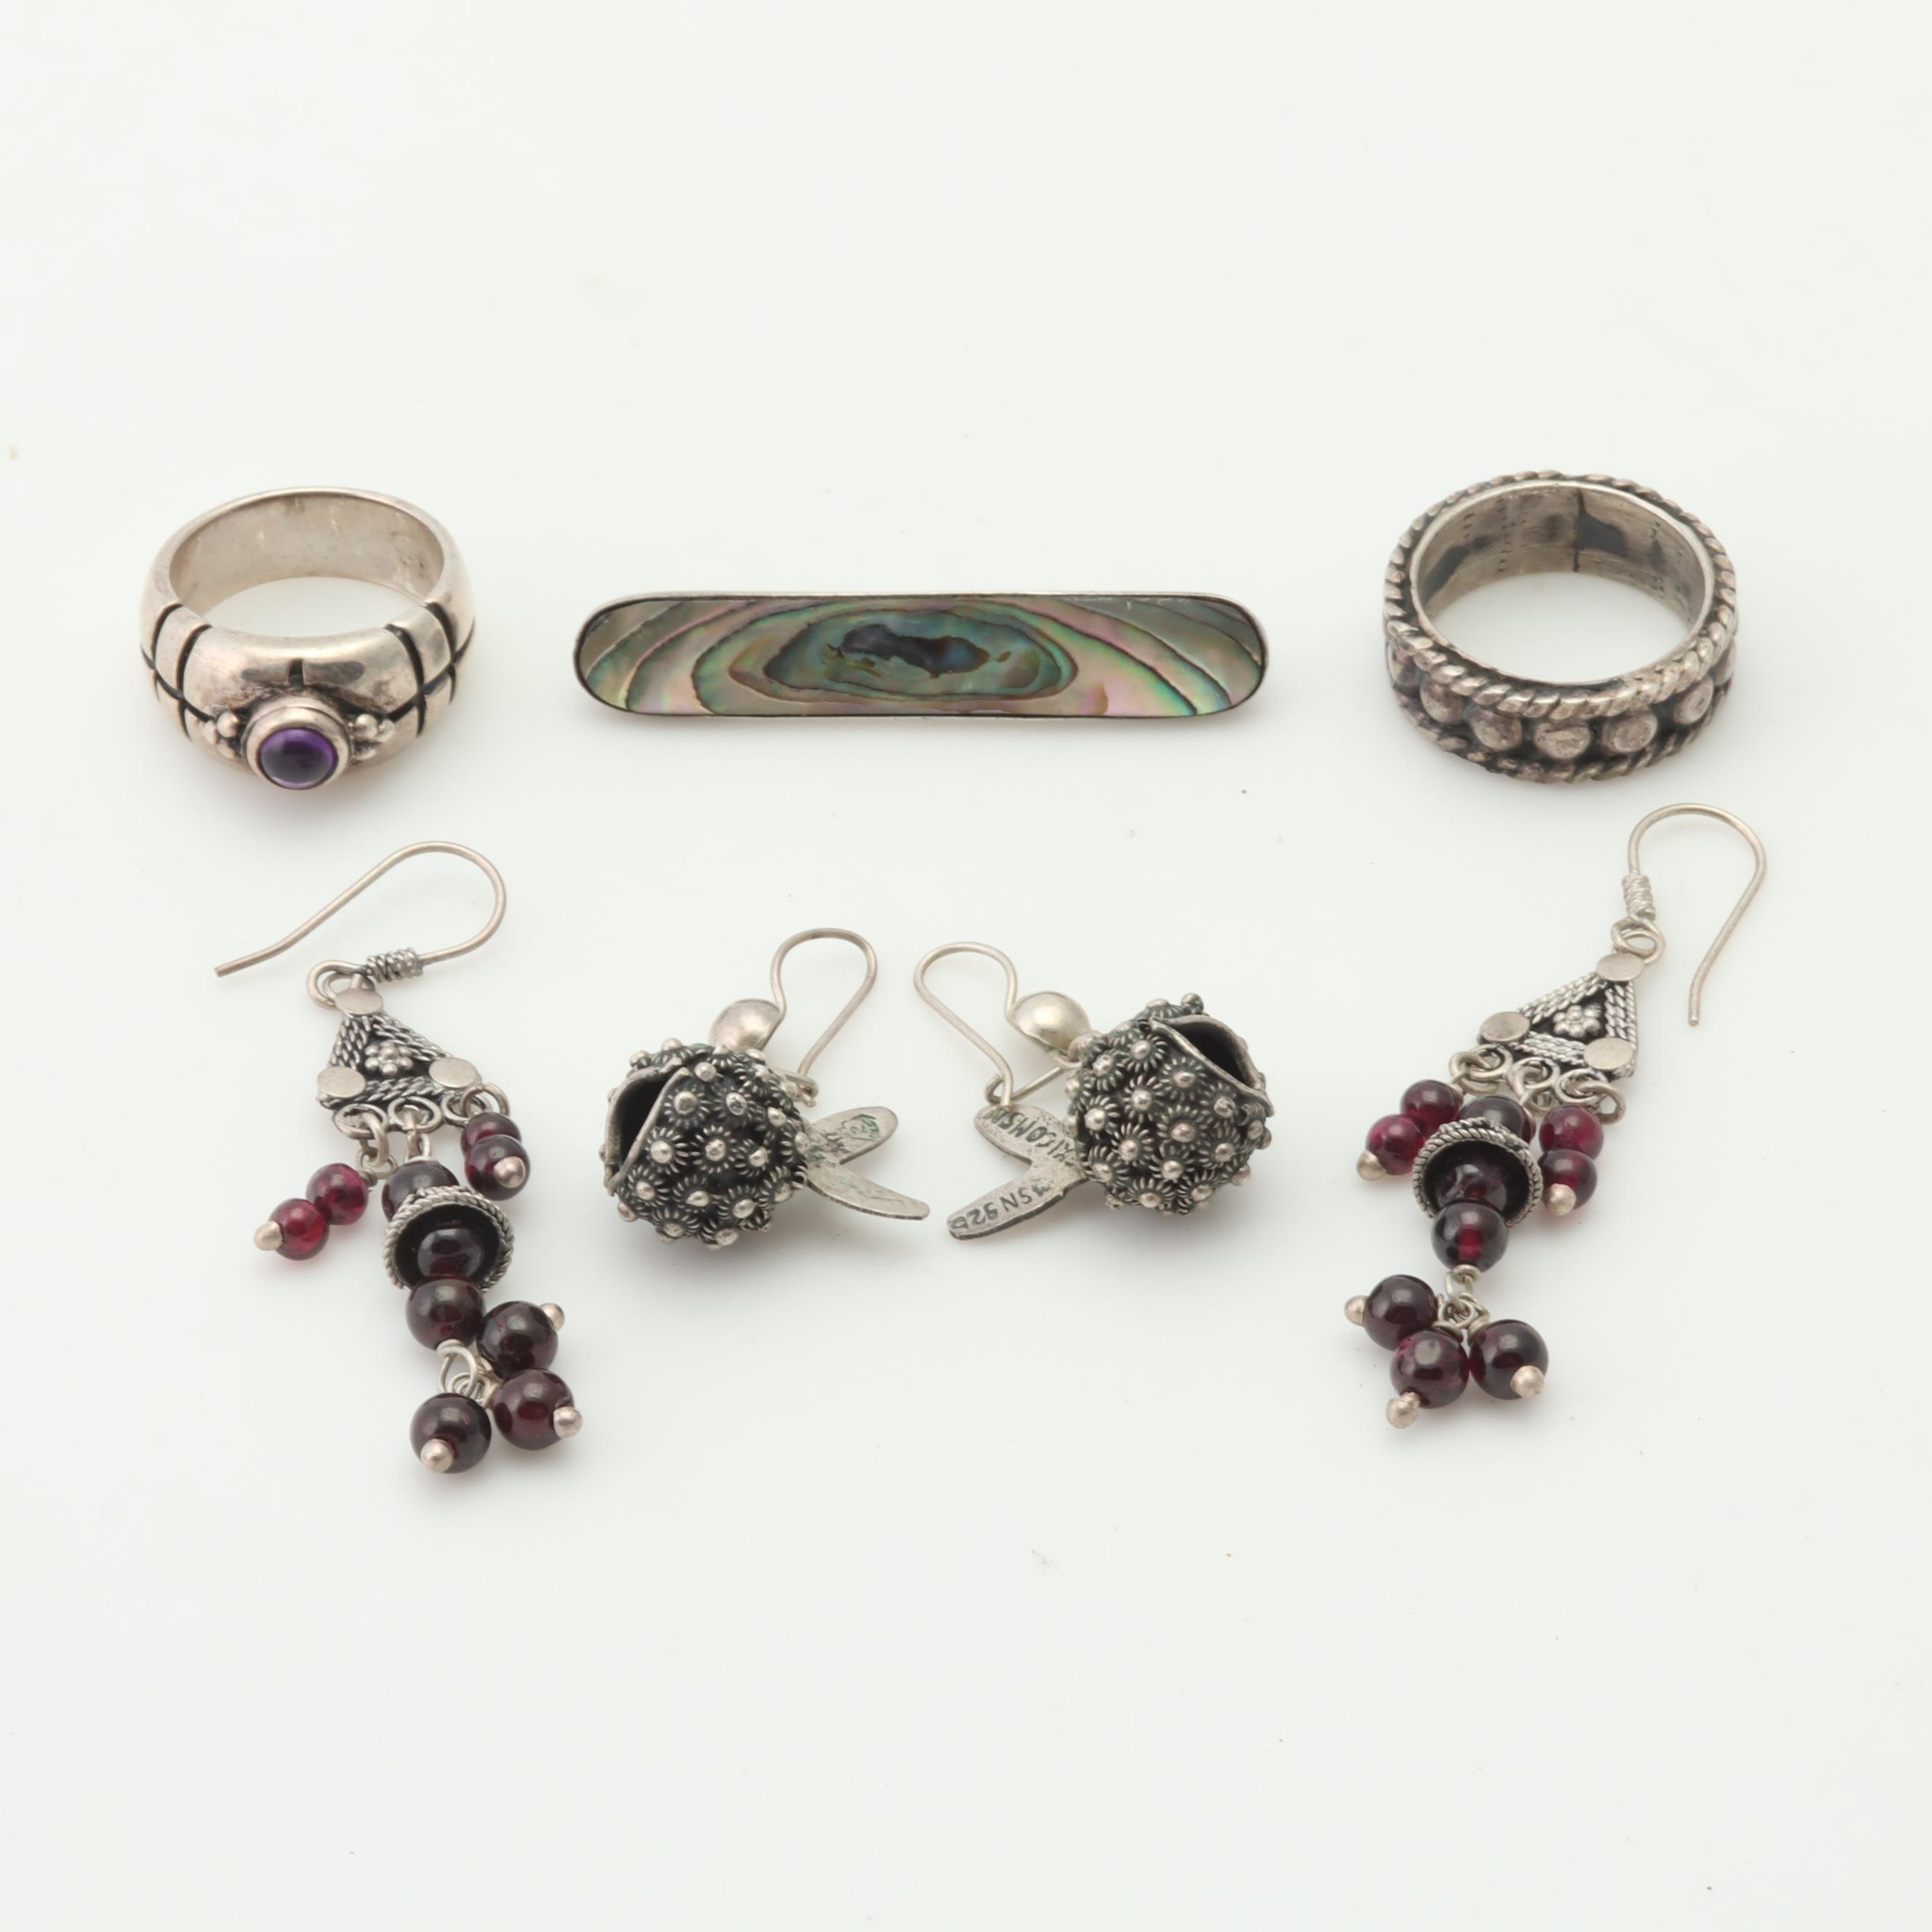 Sterling Silver Filigree Adorned Jewelry with Garnet, Abalone and More